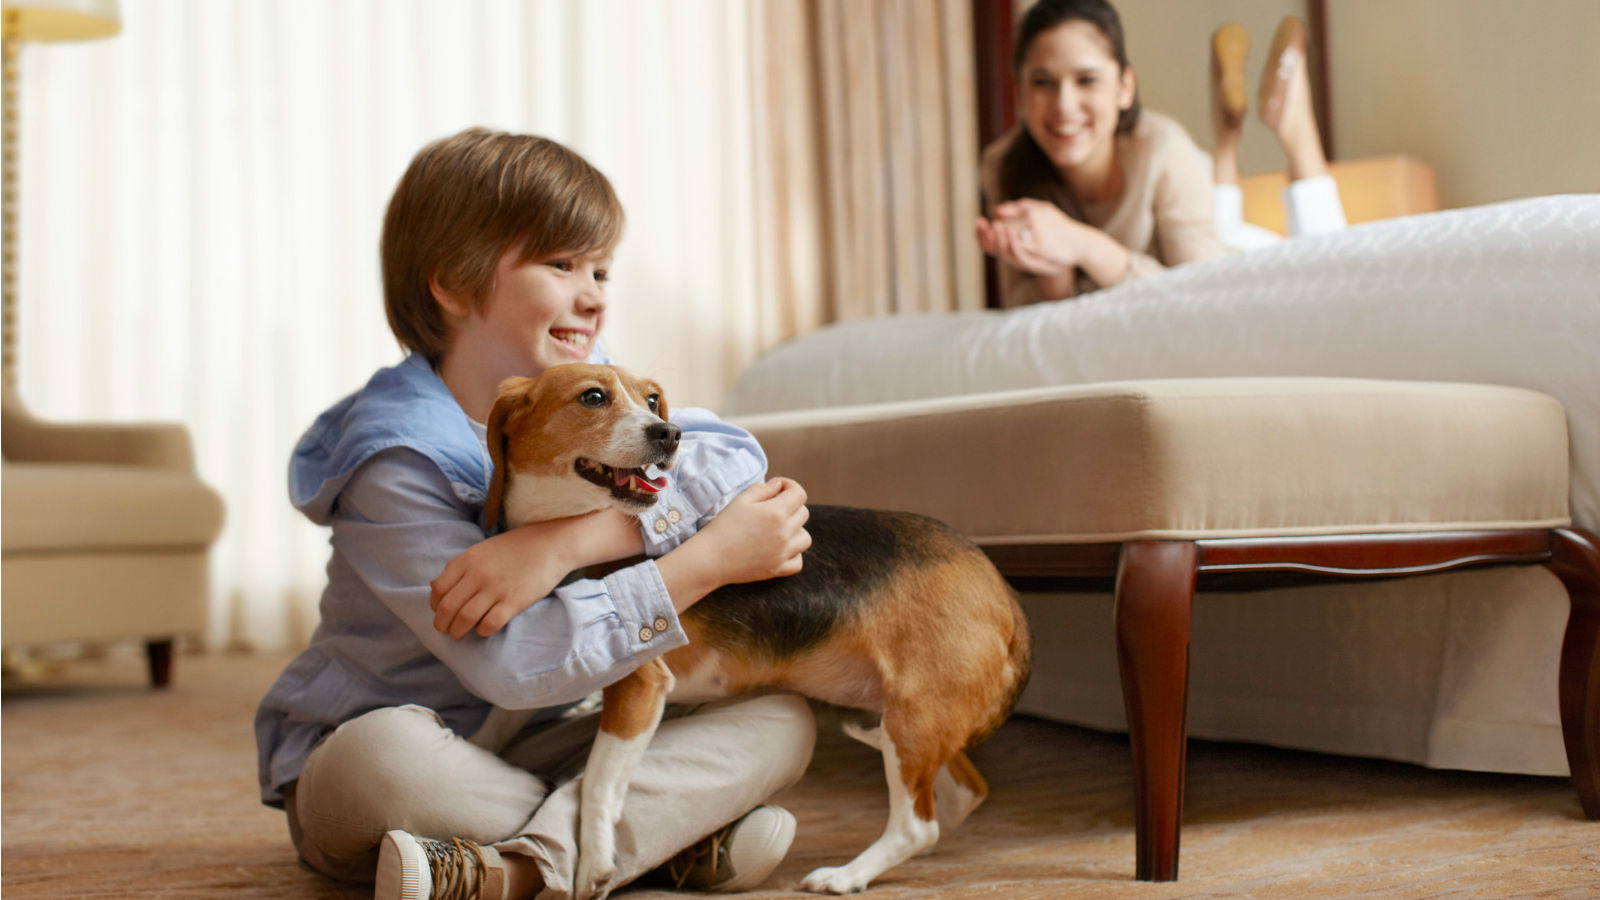 Anaheim Hotel Features - Pet-Friendly Hotel